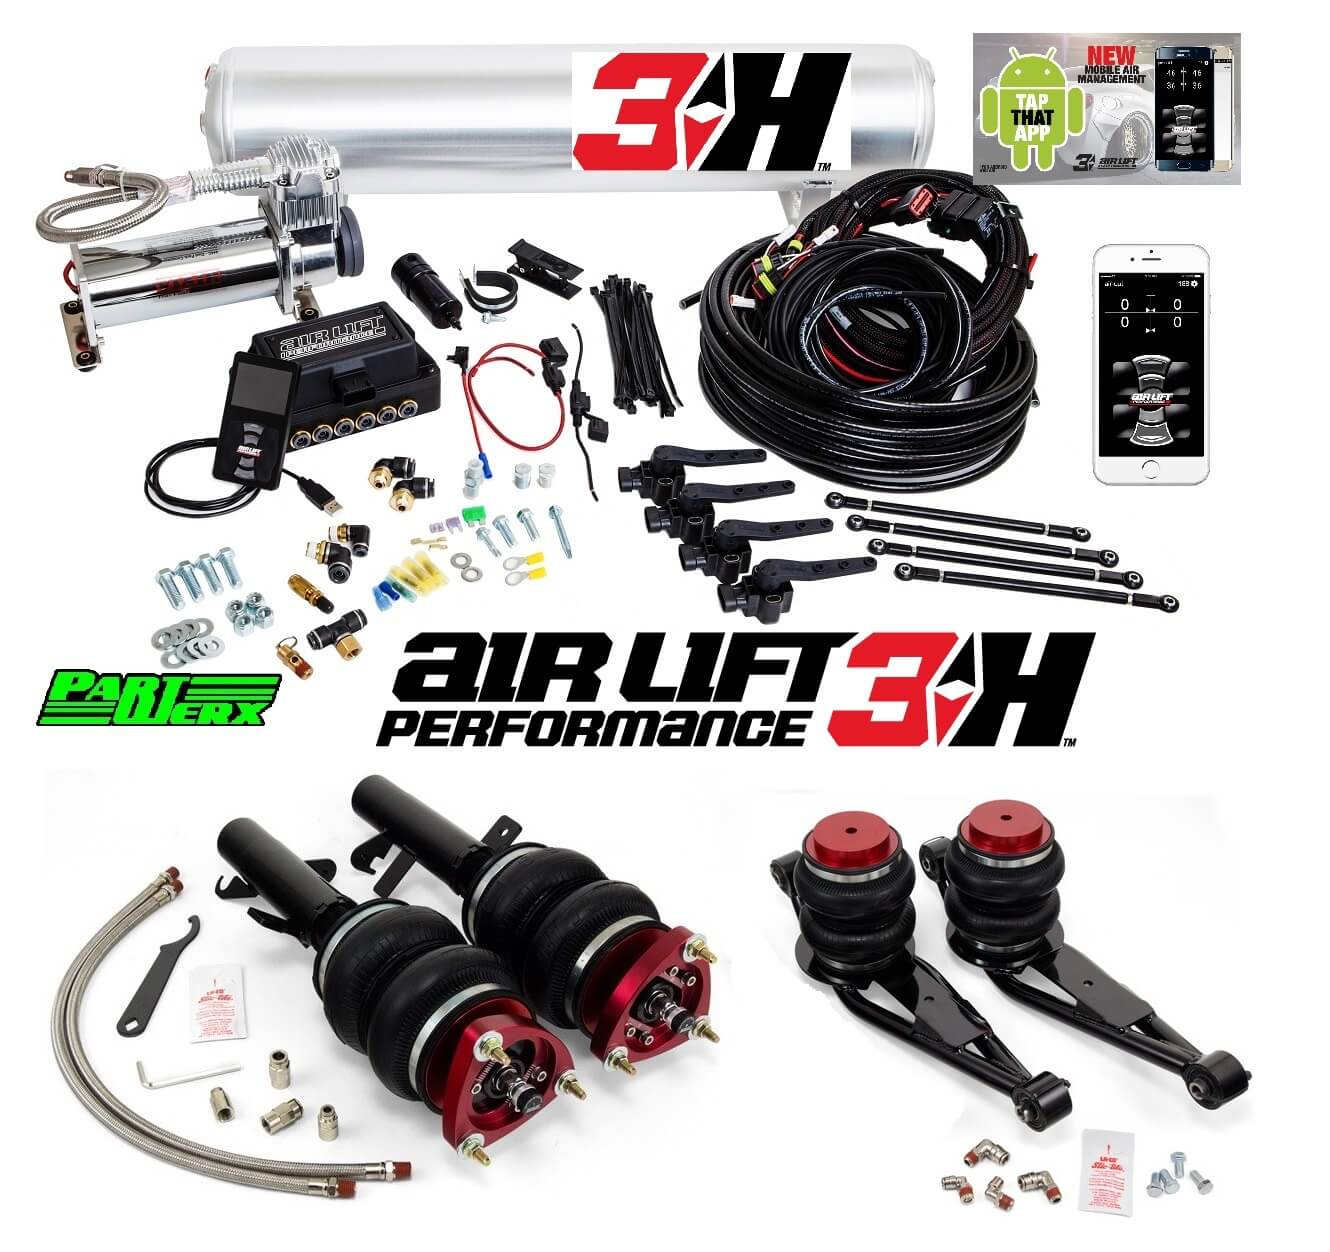 Ford Focus MK3 Air Lift 3H Management + Performance Air Ride Suspension Bags Kit Without Rear Shocks